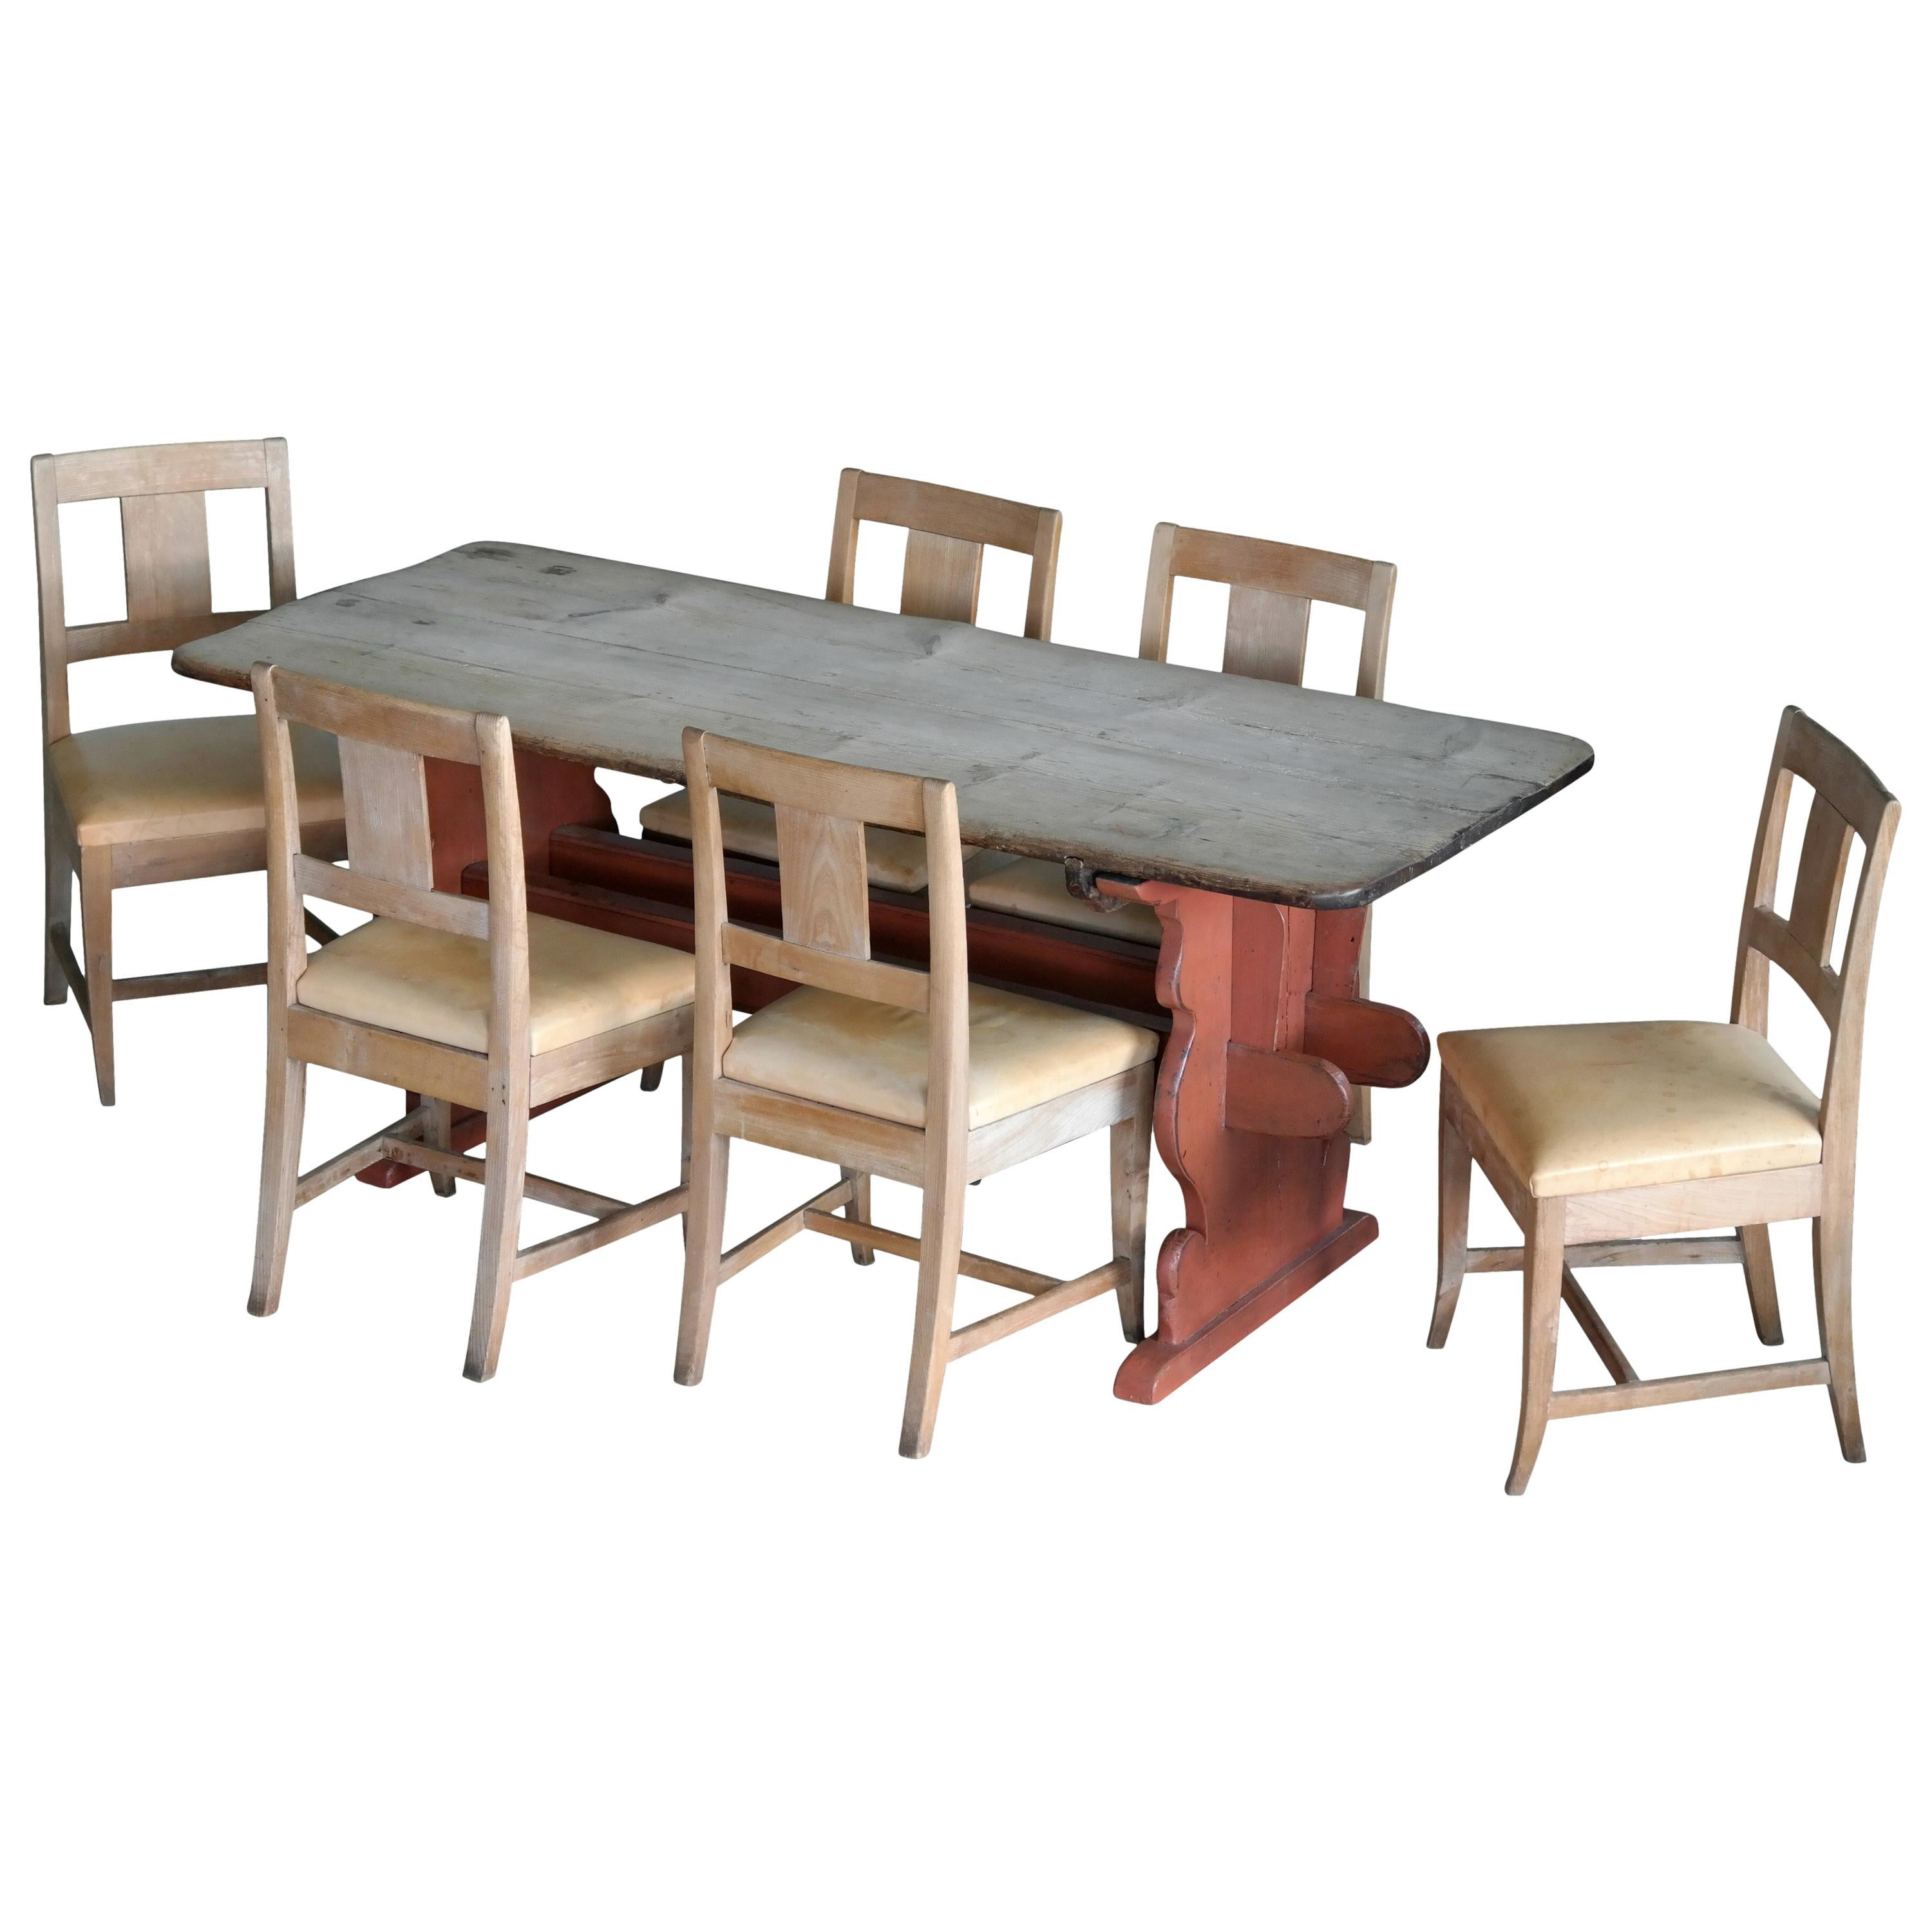 French Country Style Dining Table Set In Oak, Made In Denmark, Circa 1900  For